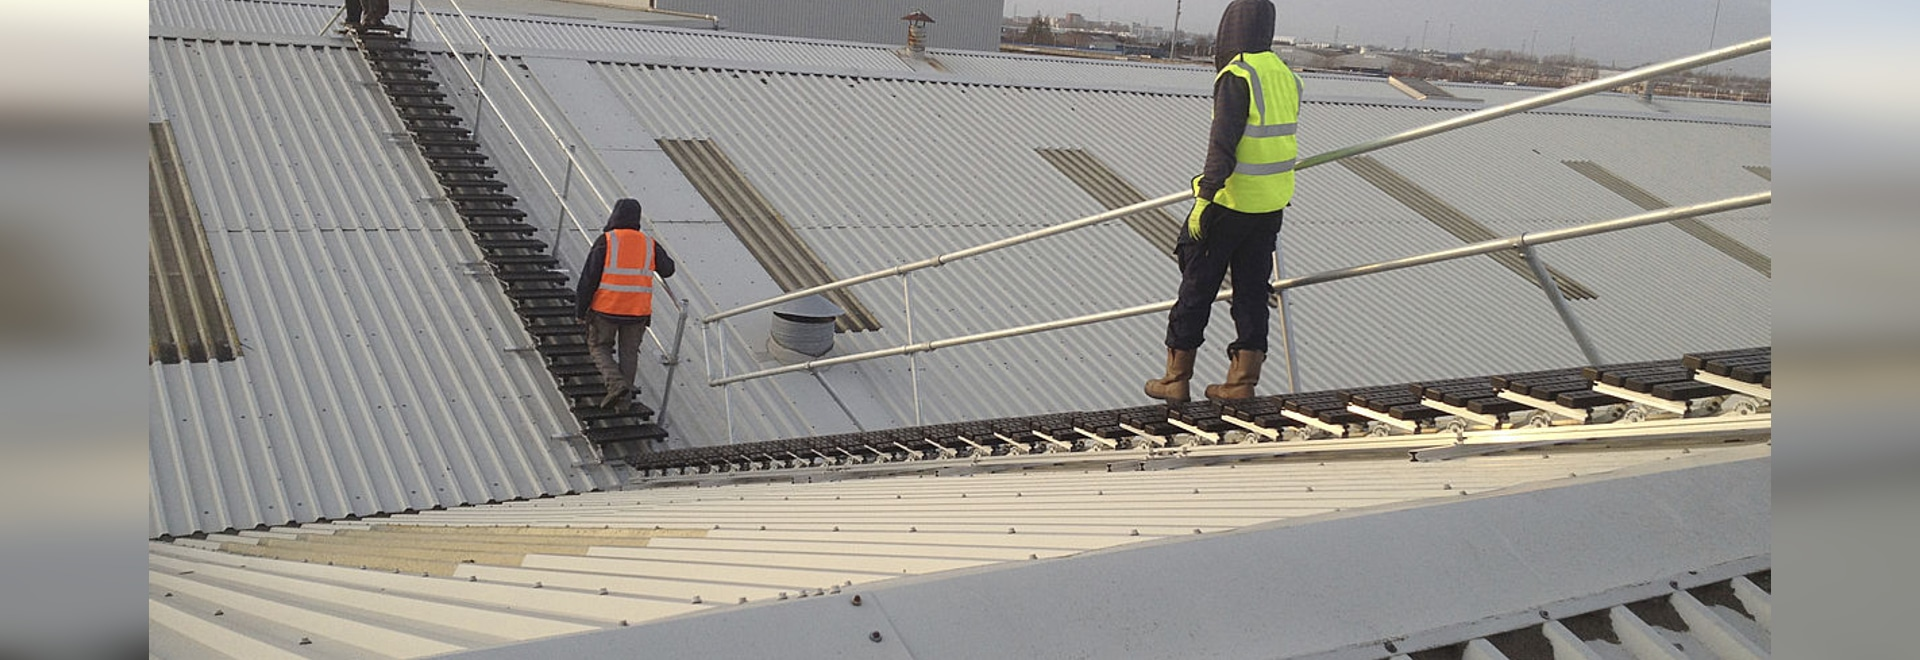 Roof top safety solution for a manufacturing plant